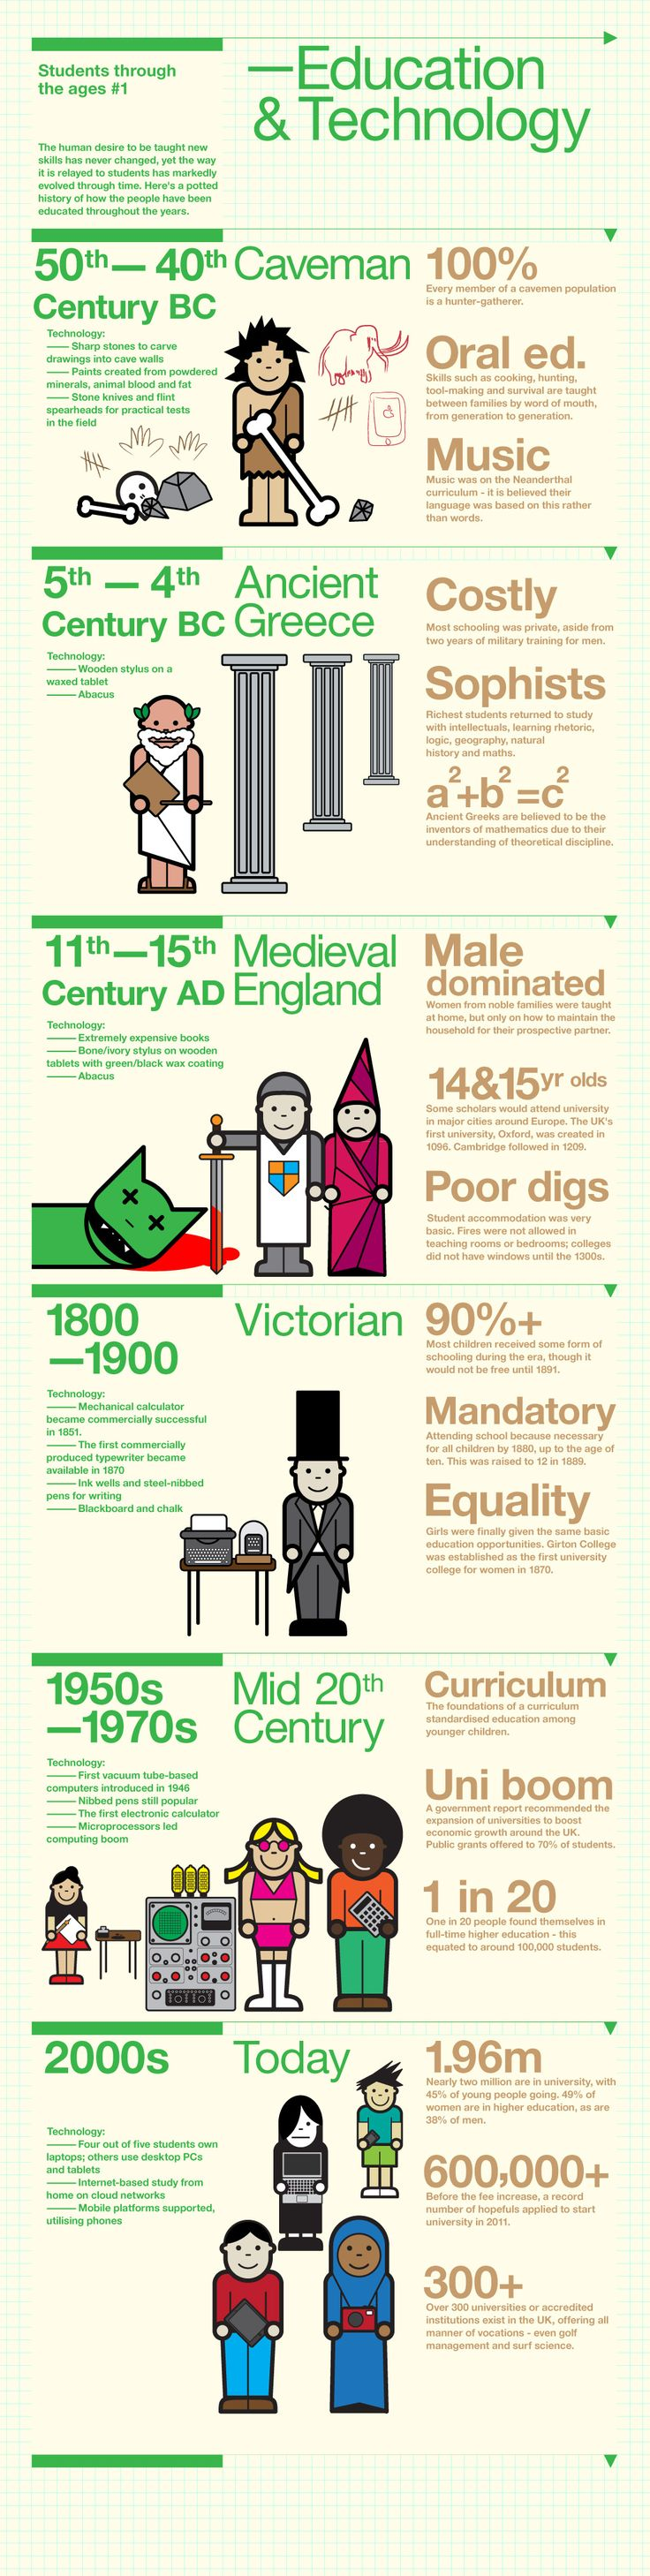 Education and technology have come a long way over the past generation. So what better way to figure out our current state than by checking out an interesting infographic on a blog? Edudemic perhaps! This infographic details the history of education technology starting from the time of cavemen to present day. While it's by no means robust, it's interesting to check out some of the facts presented.